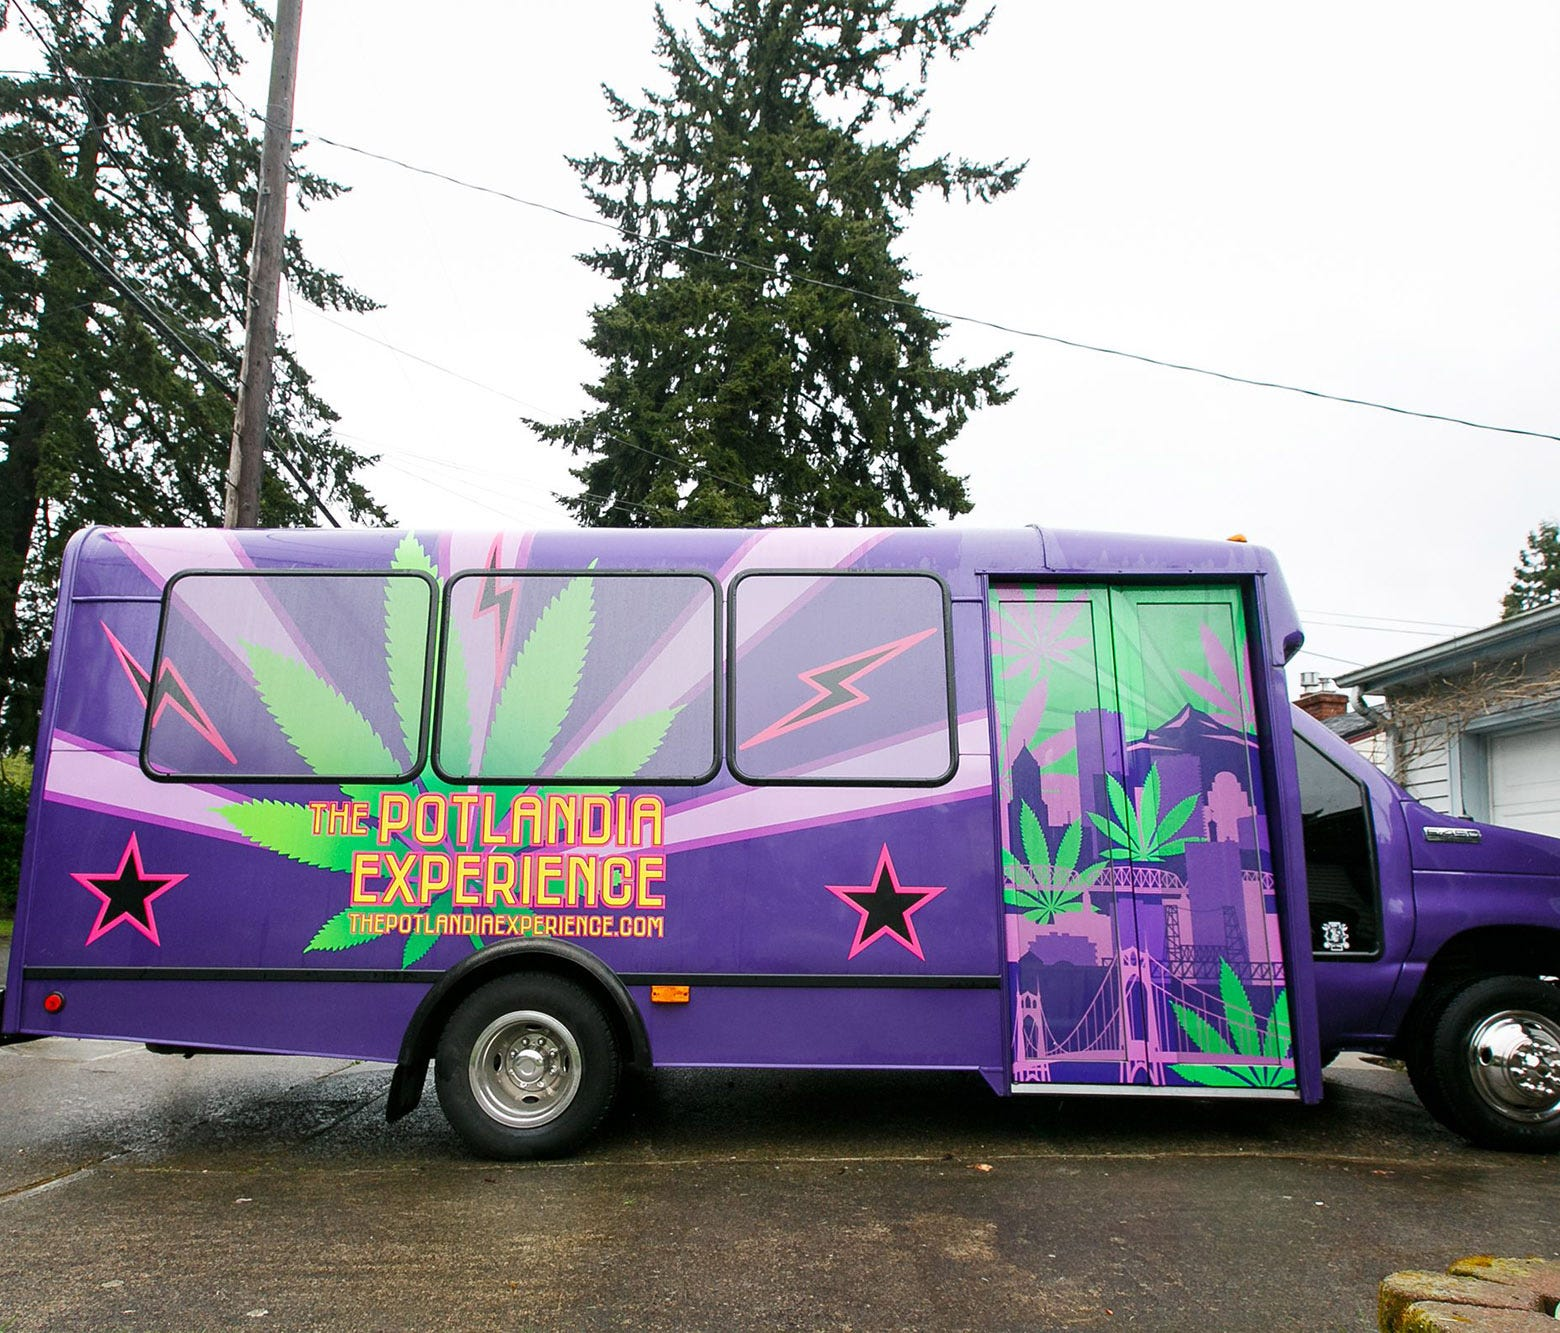 The Potlandia Experience, started by Camille Gonzalez, takes customers on a four-hour-and-20-minute tour of marijuana stores, a brewery and food carts in Portland, Ore. The party bus is a converted airport shuttle that can seat 14 people.